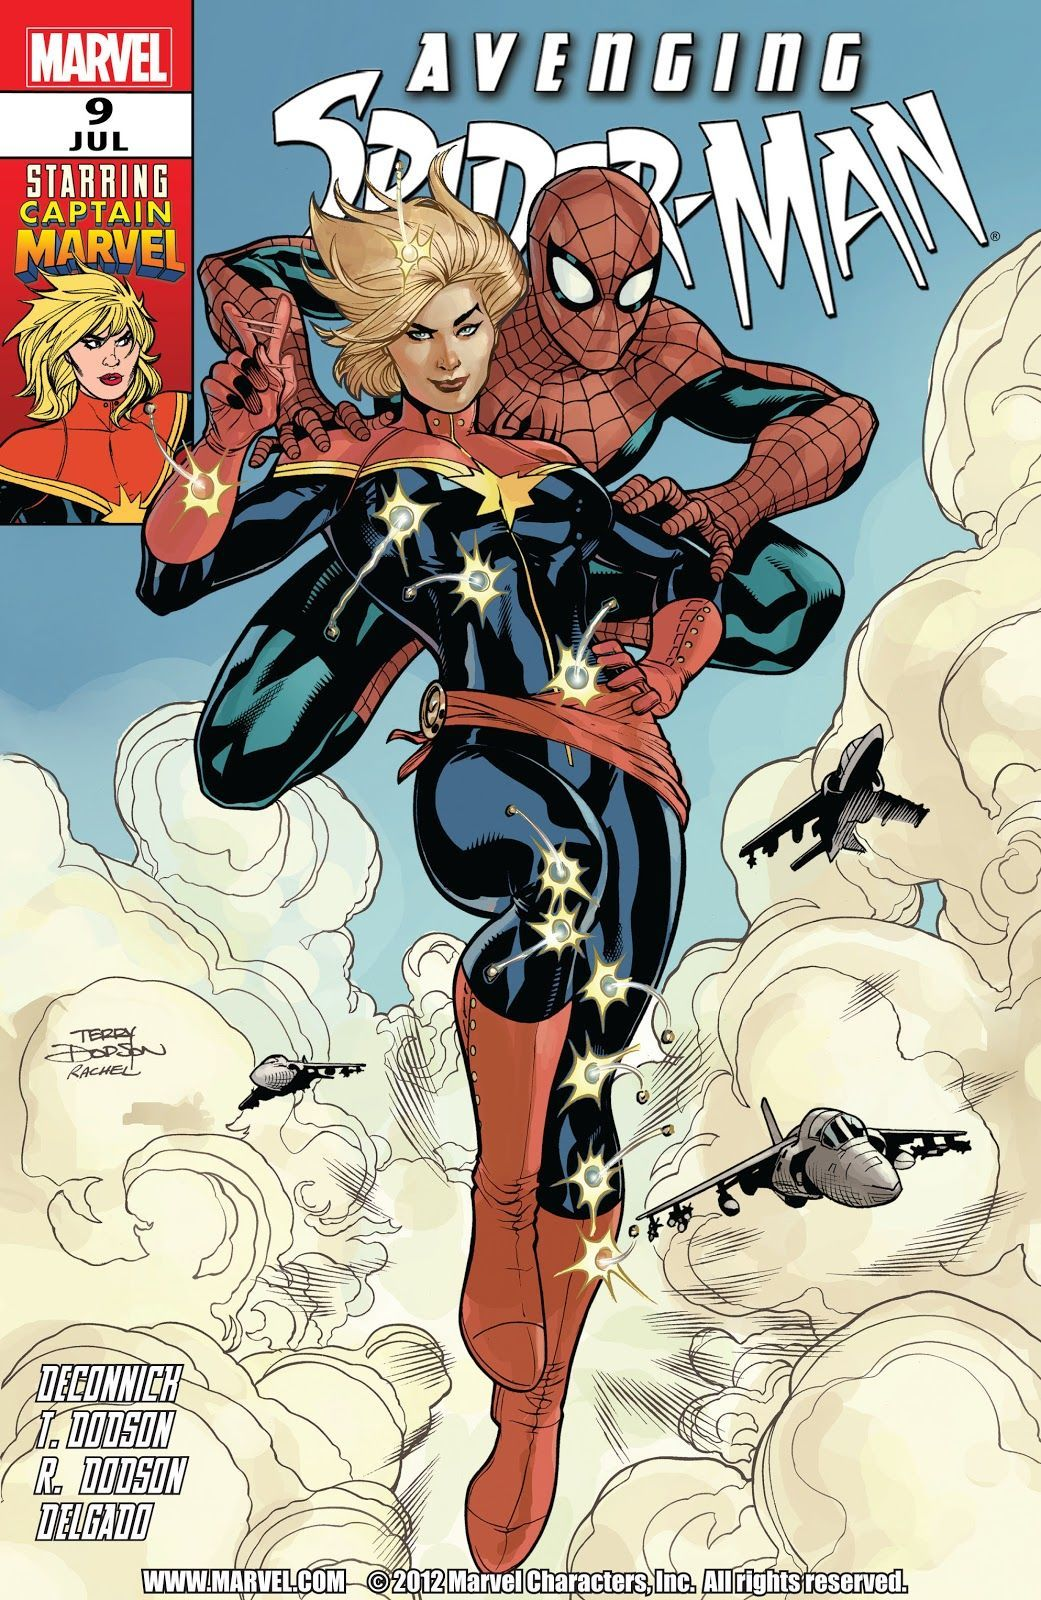 Avenging Spider-Man #9 (Art by Terry Dodson, Written by Kelly Sue DeConnick)